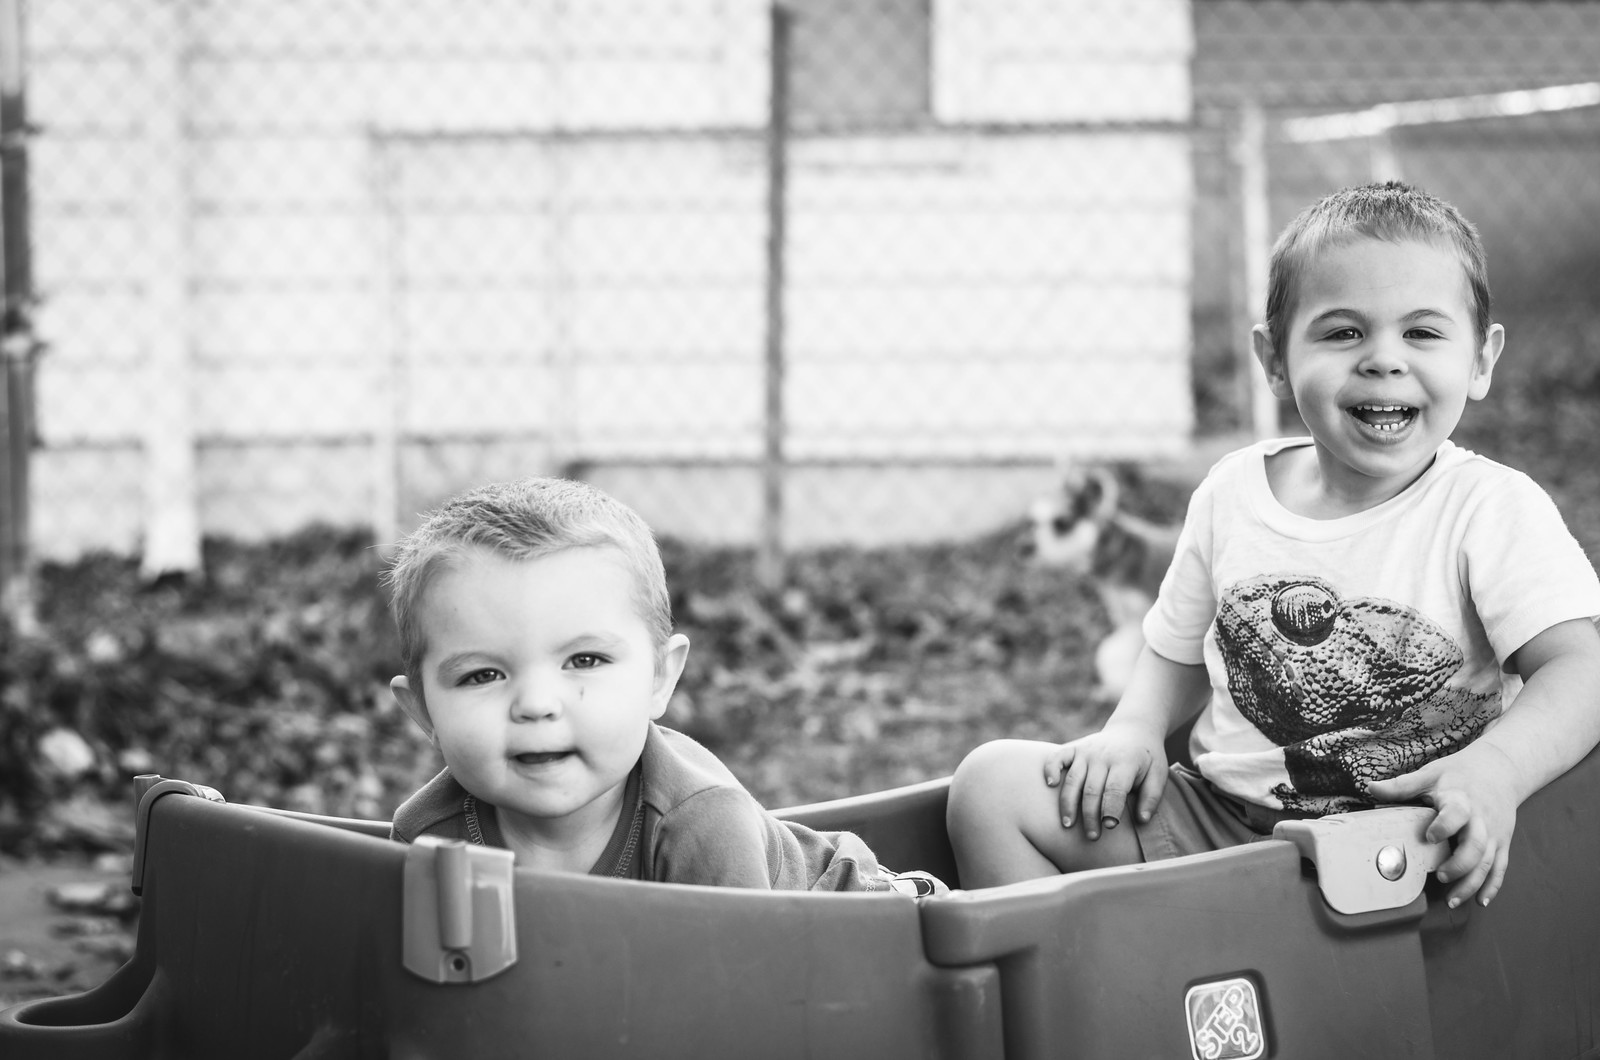 Micah and Ezra in the Wagon